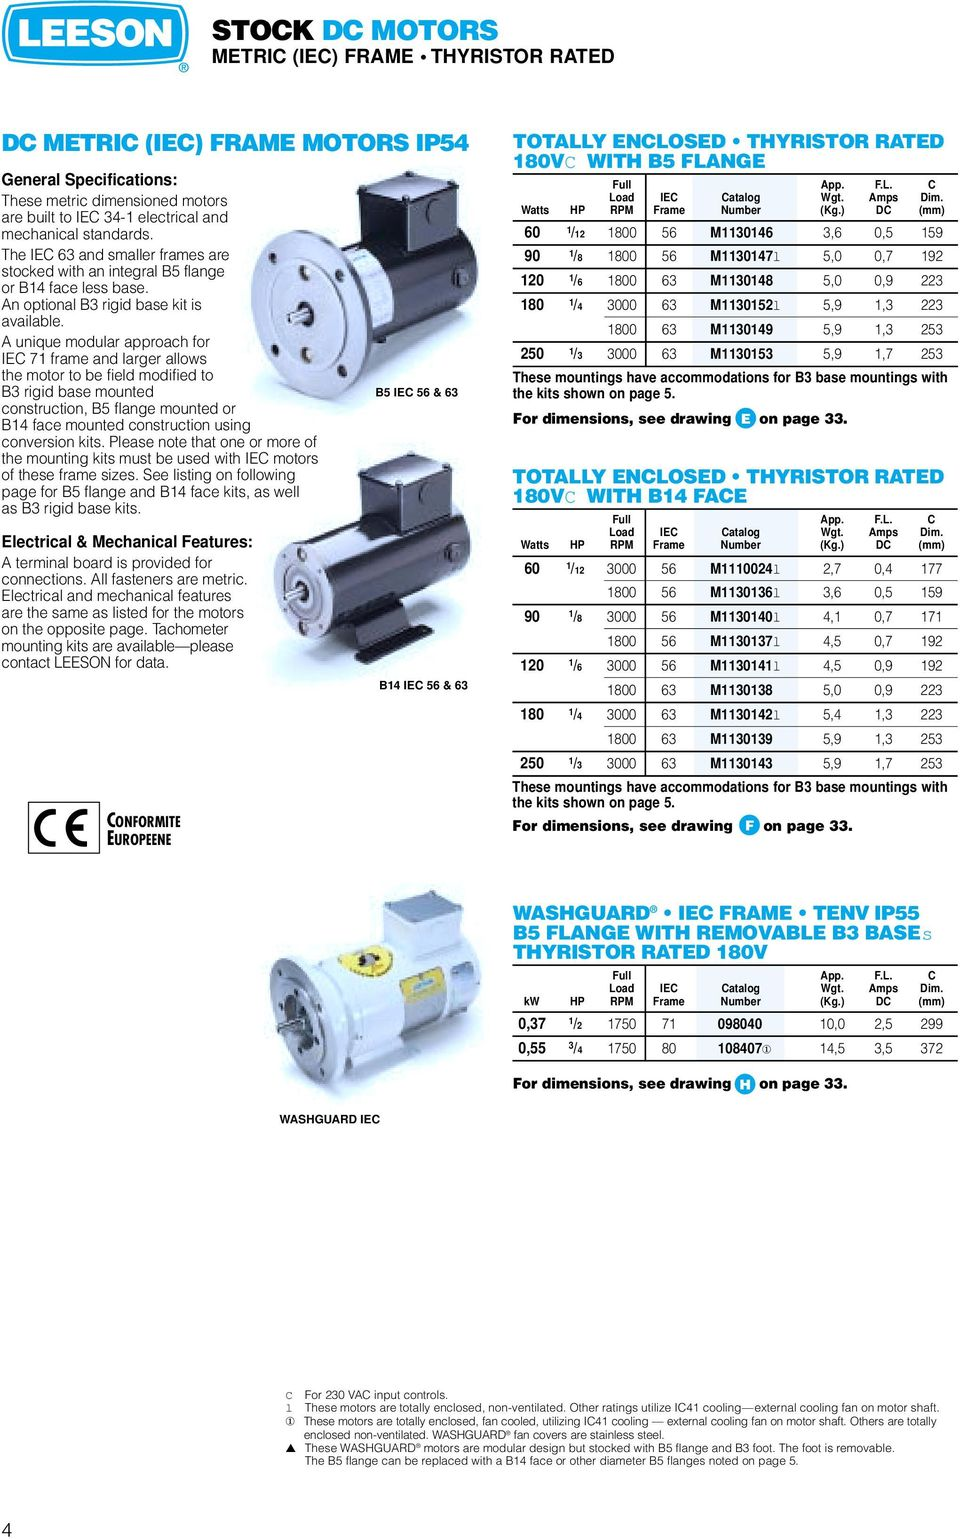 Direct Current Motors Gearmotors Pdf Leeson Dc Motor Wiring Diagram A Unique Modular Approach For Iec 71 Frame And Larger Allows The To Be Field